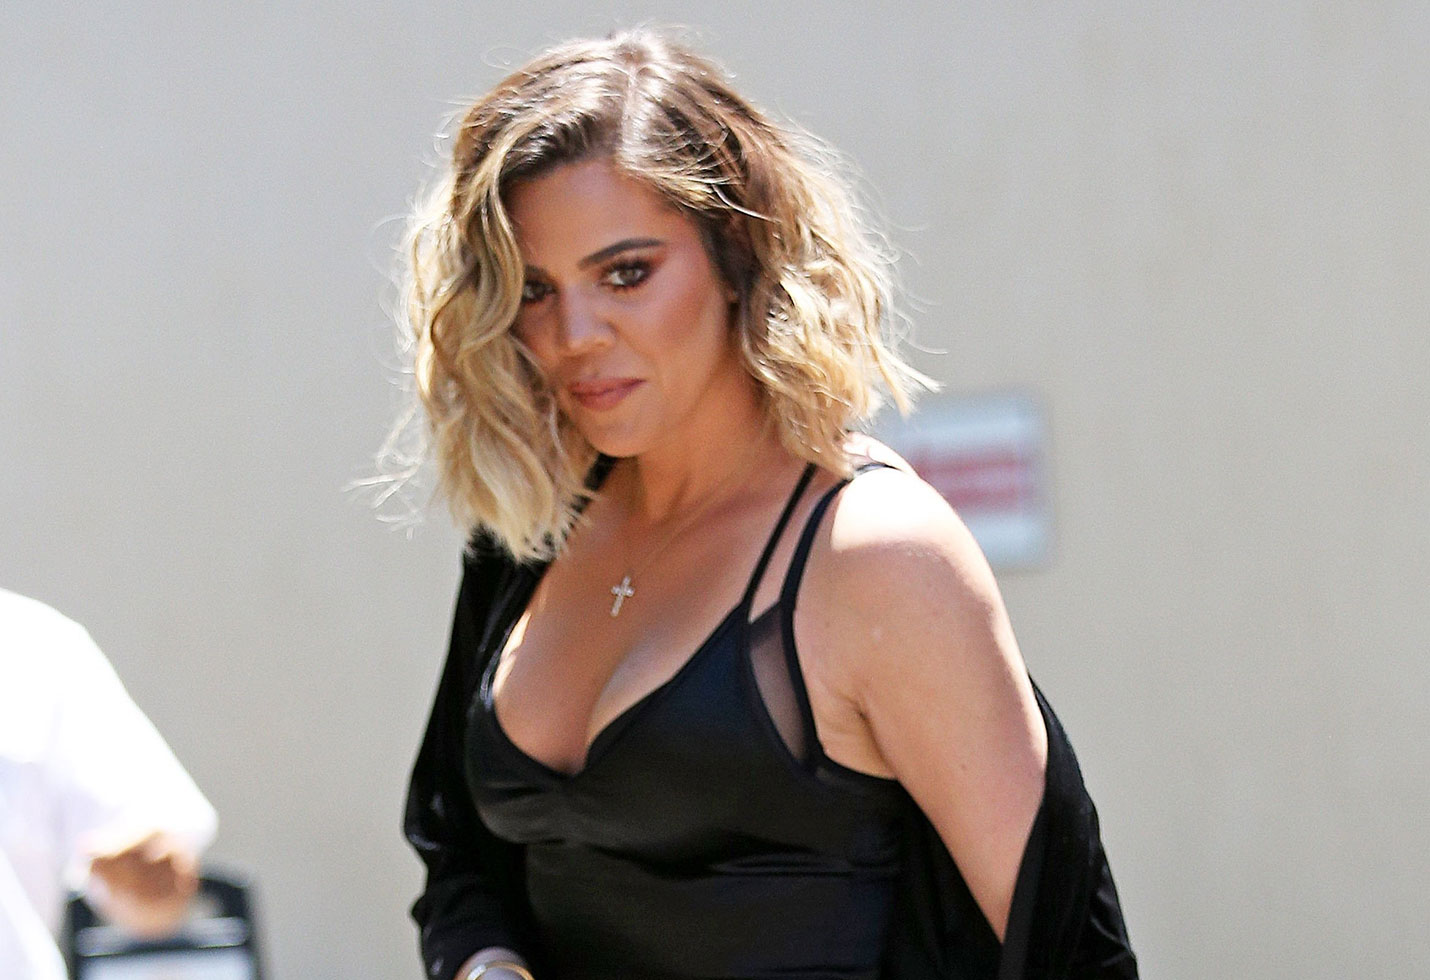 Khloe kardashian naked boobs out sheer bodysuit